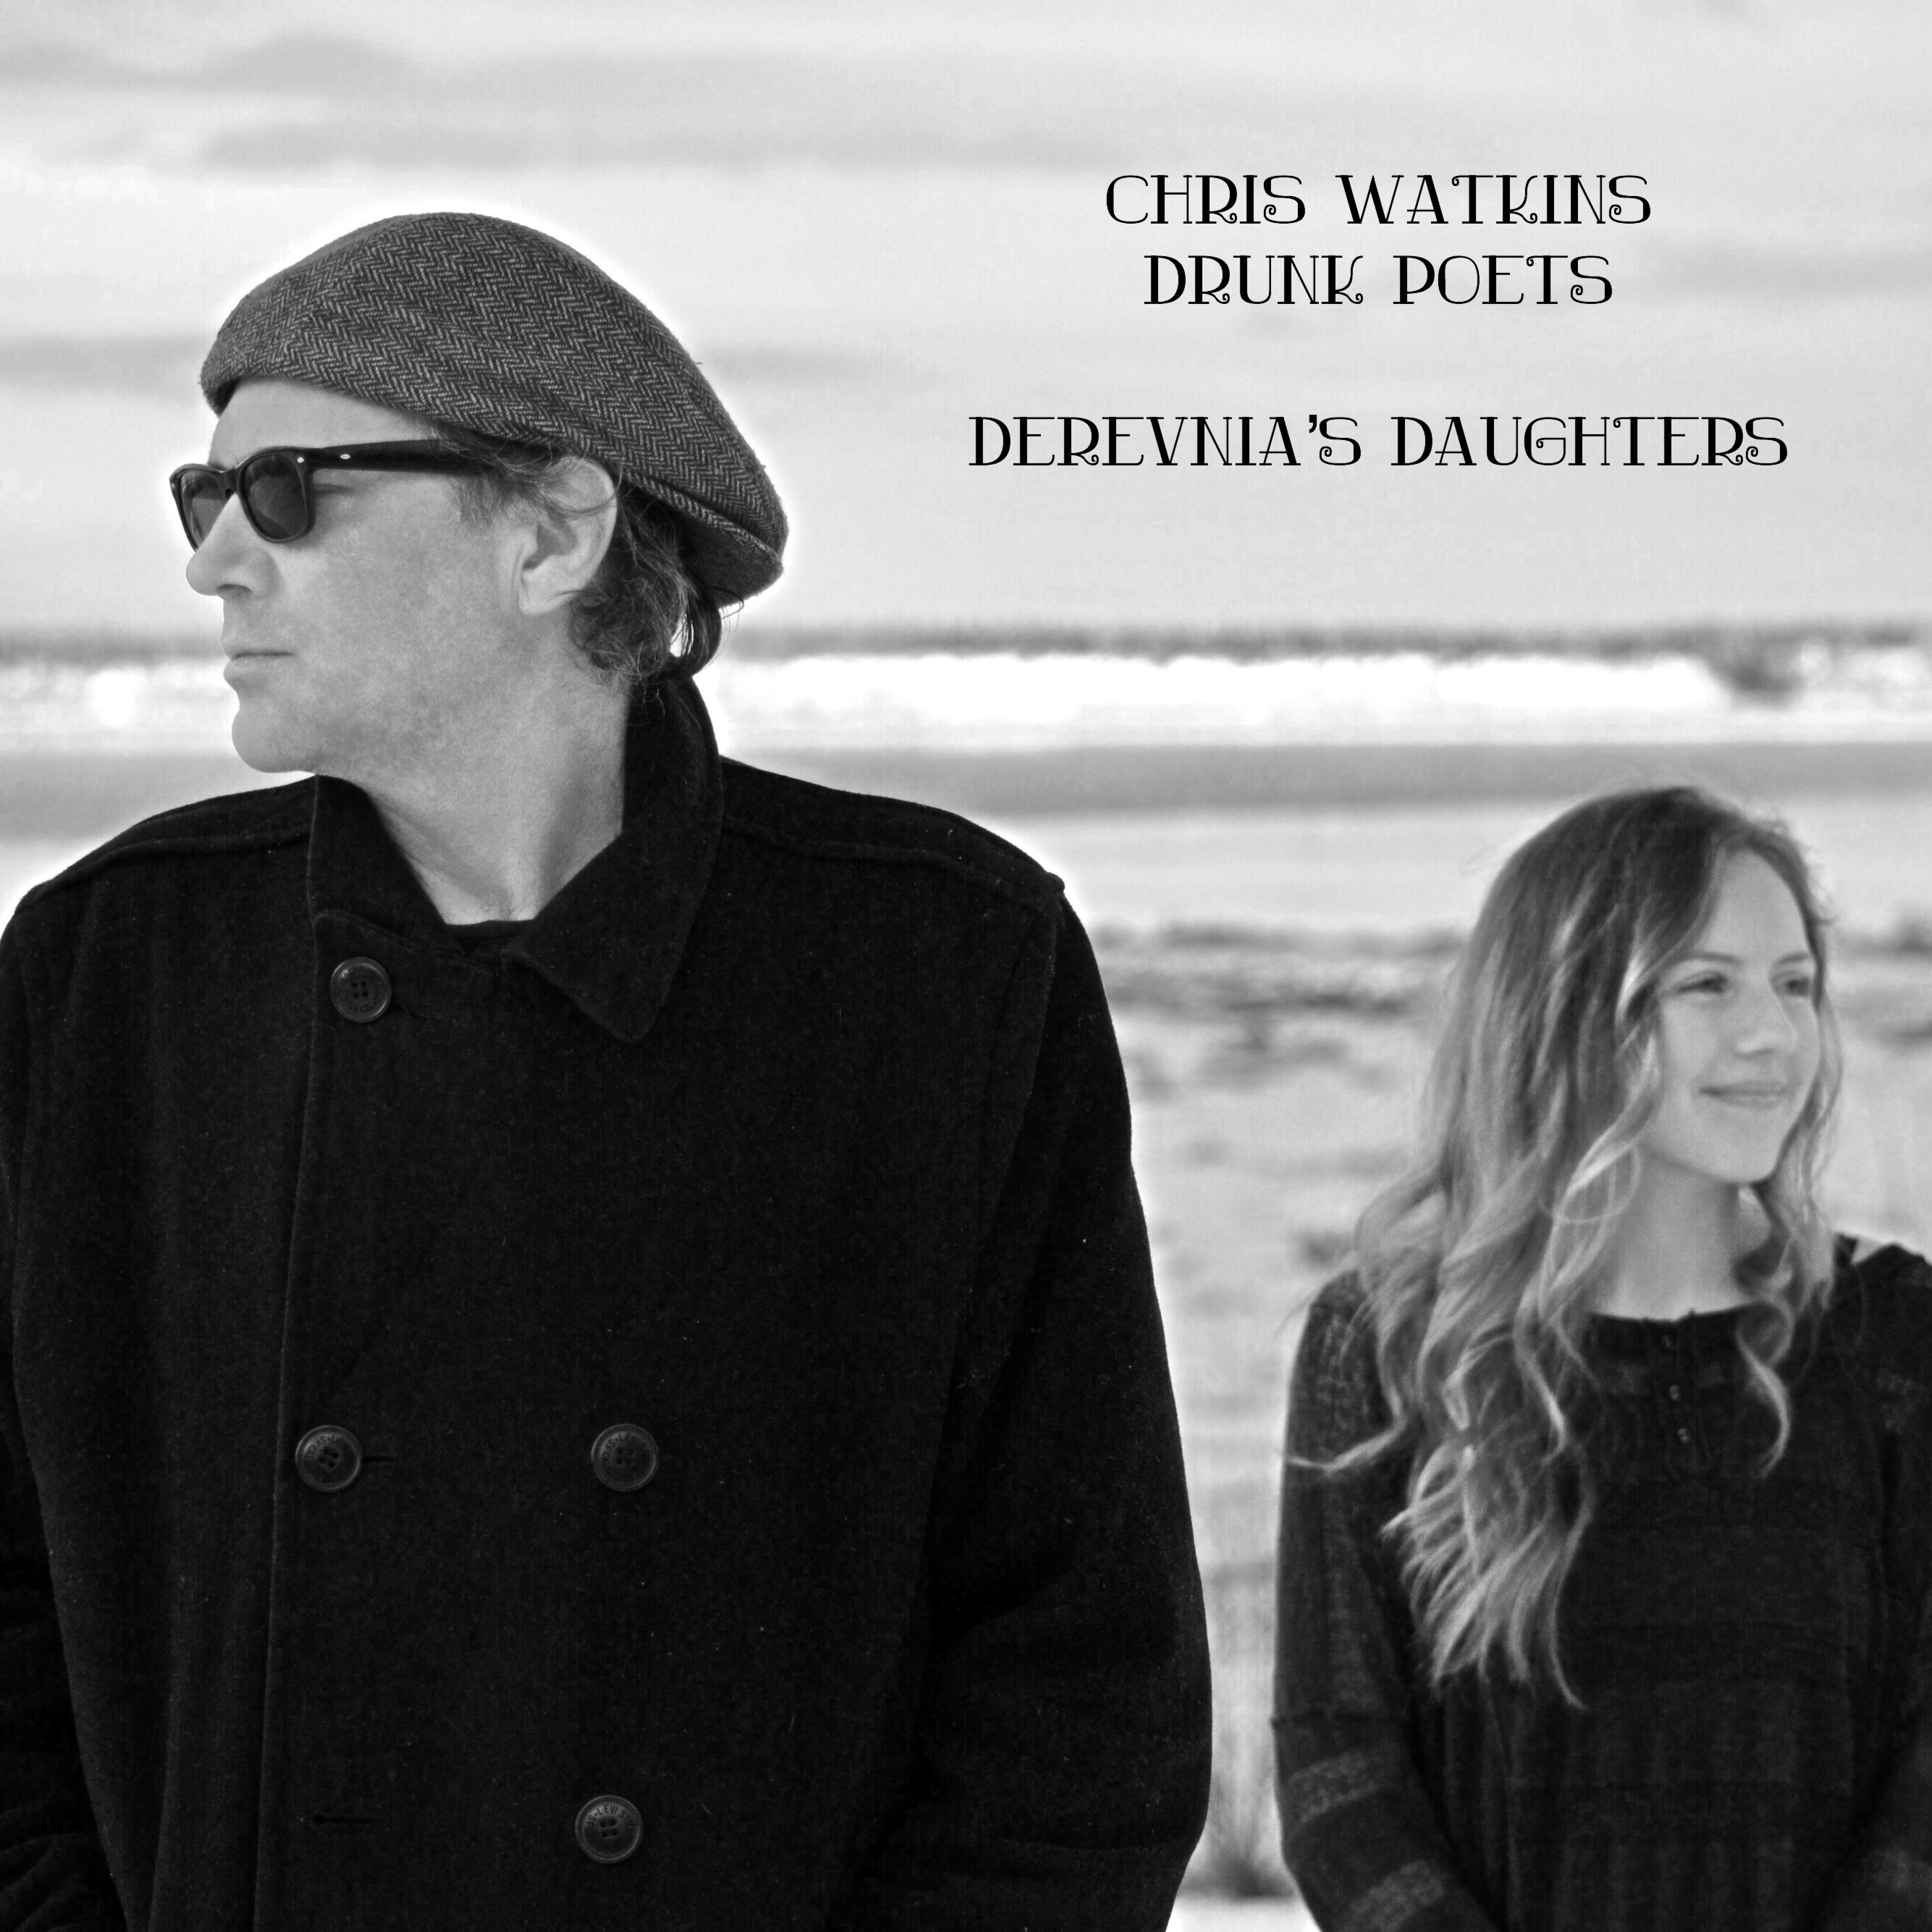 Derevnia's Daughters Album Cover  IMG_6489